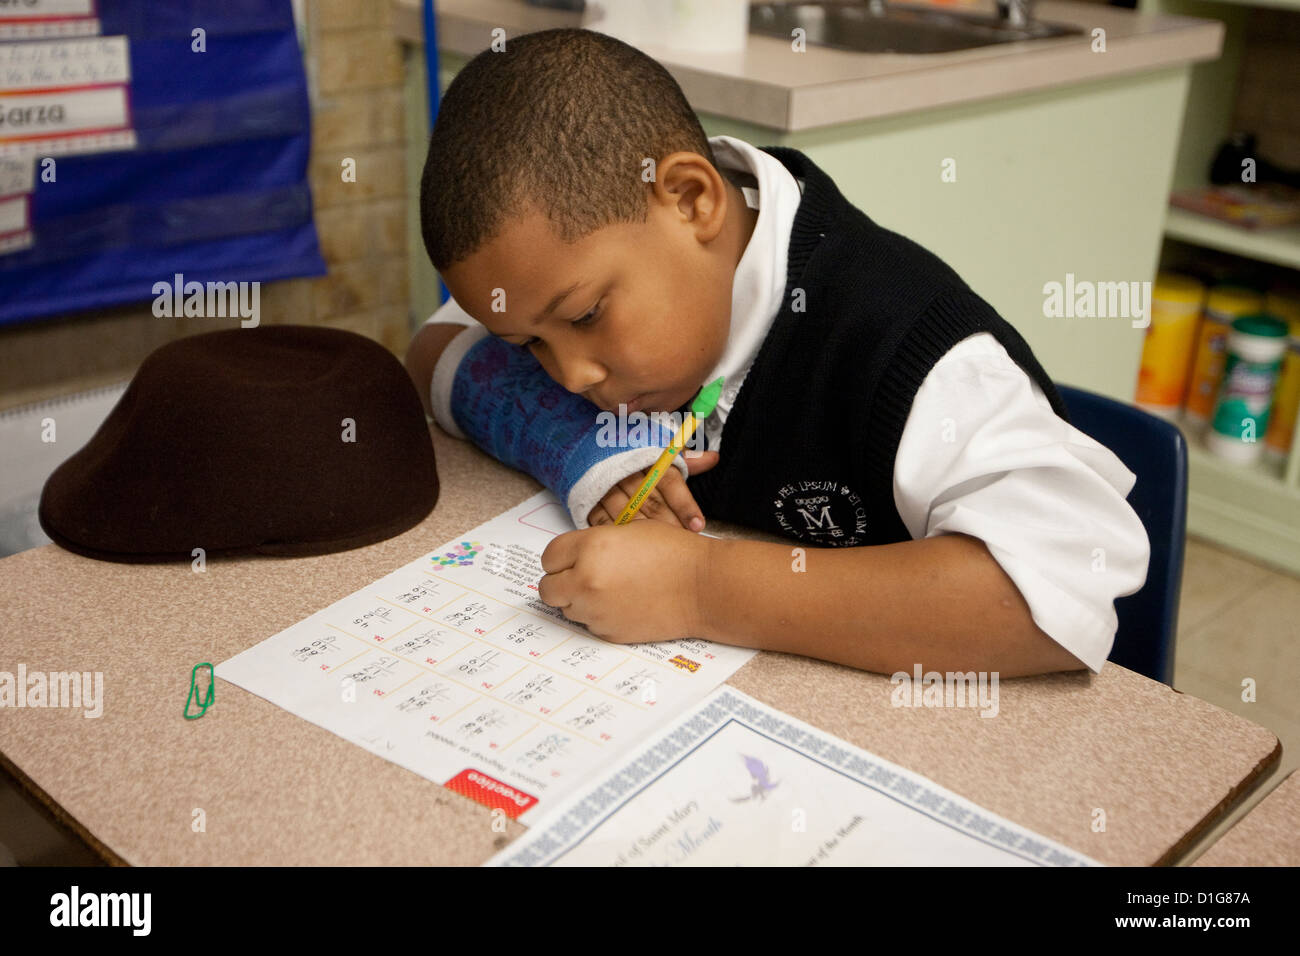 African-American boy in second grade elementary private Catholic school in Texas does school work at desk in classroom - Stock Image